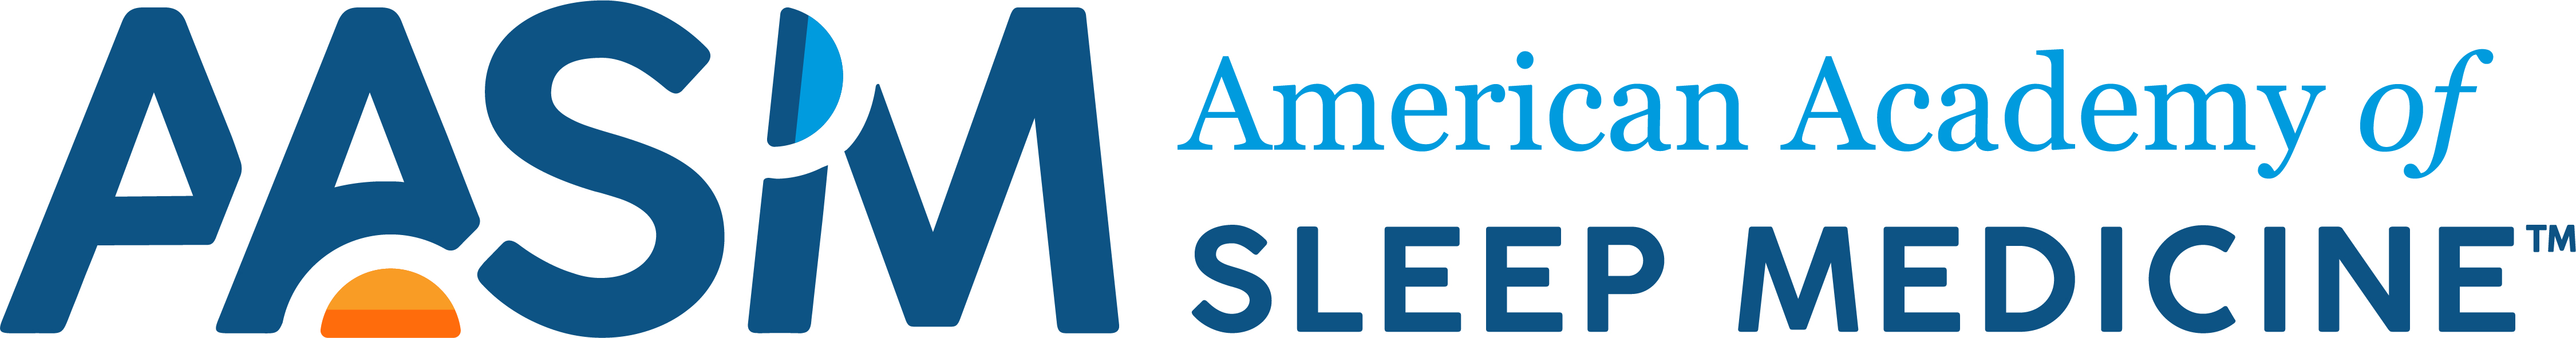 American Academy of Sleep Medicine (AASM)